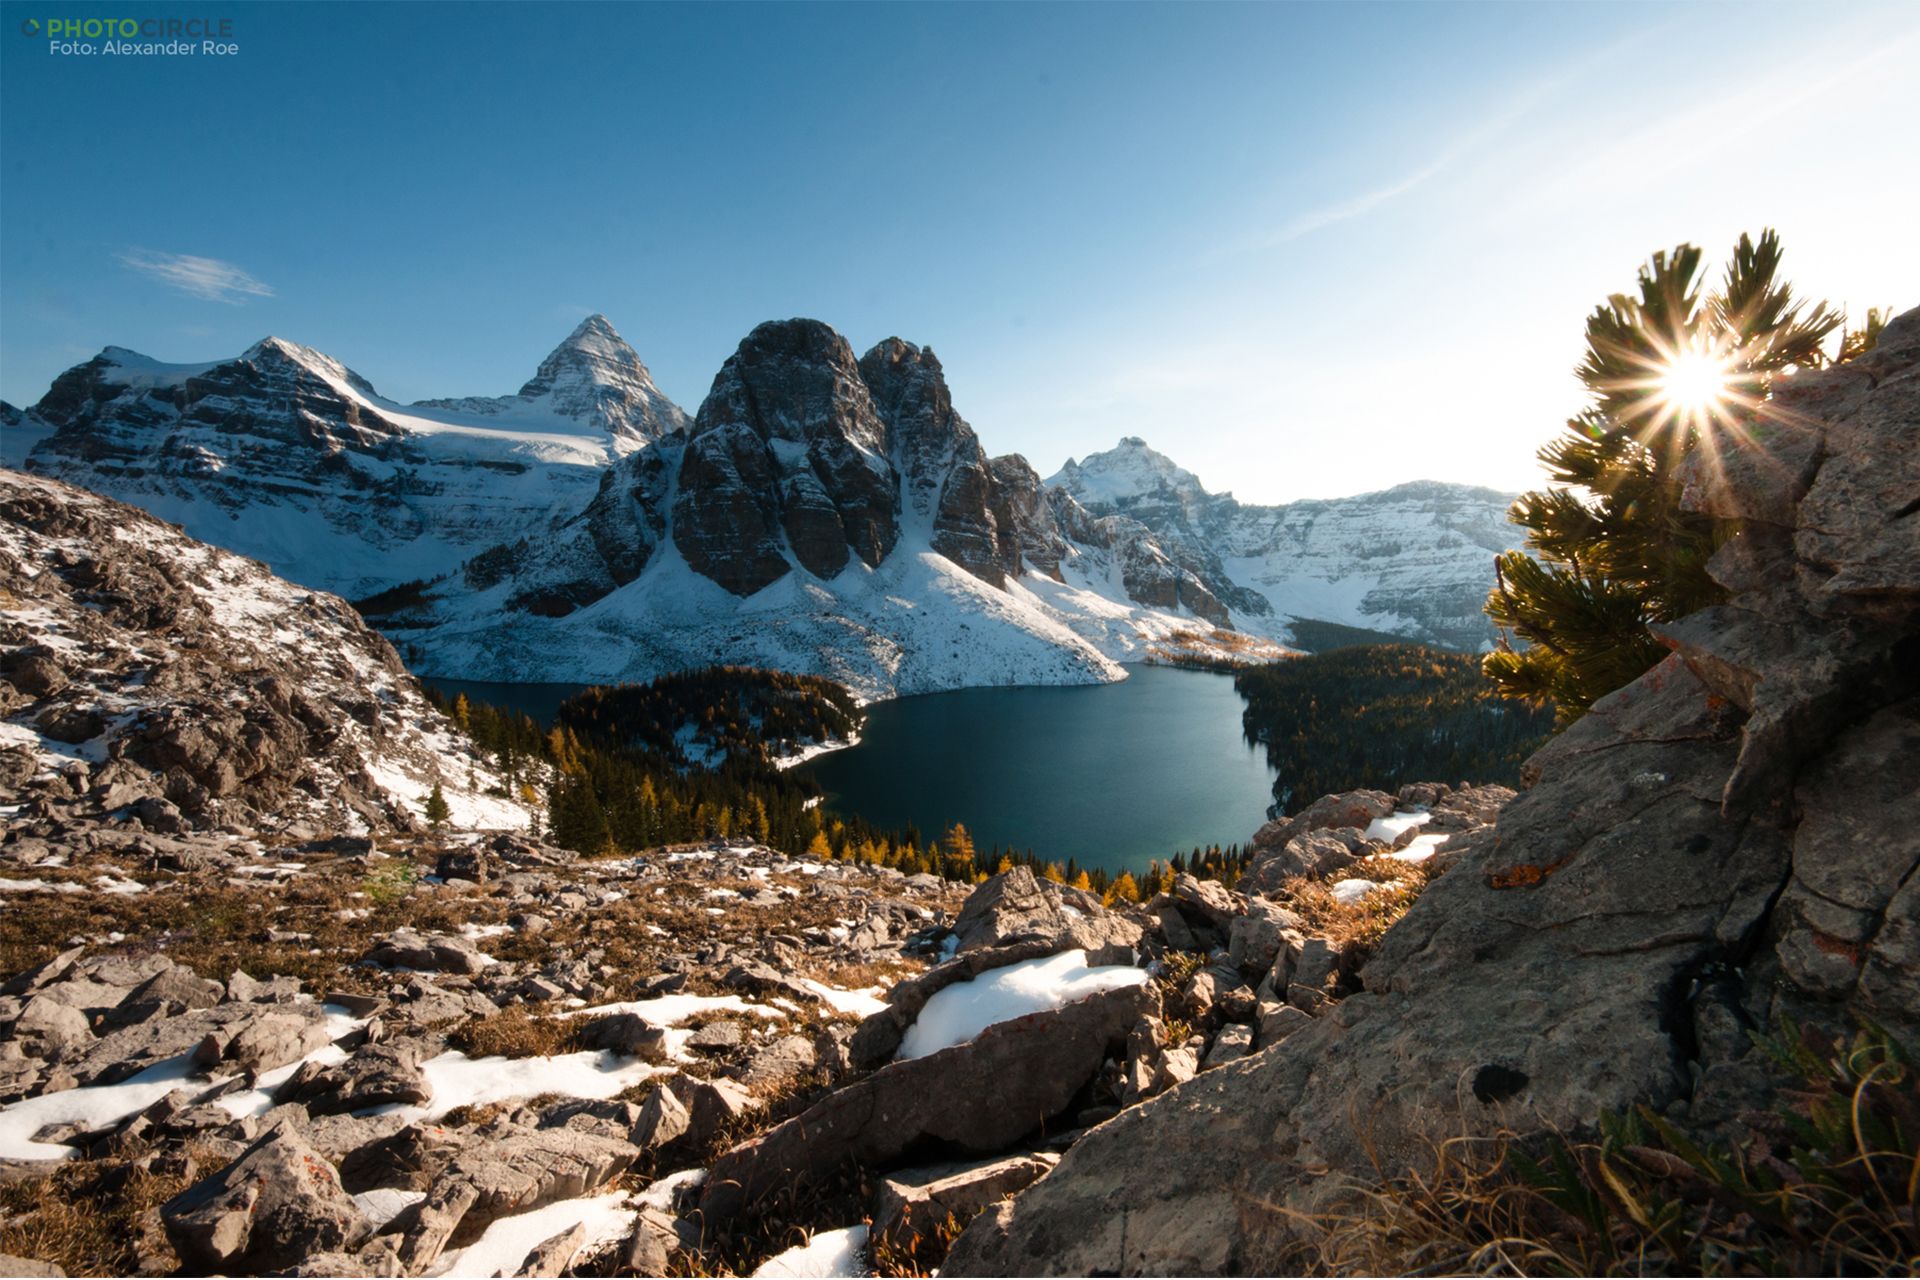 VAUDE-Visions-Wallpaper-for-free-Alexander-Roe-After-a-perfect-Autumns-day-of-hiking-Assiniboin-wallpaper-wp48011646